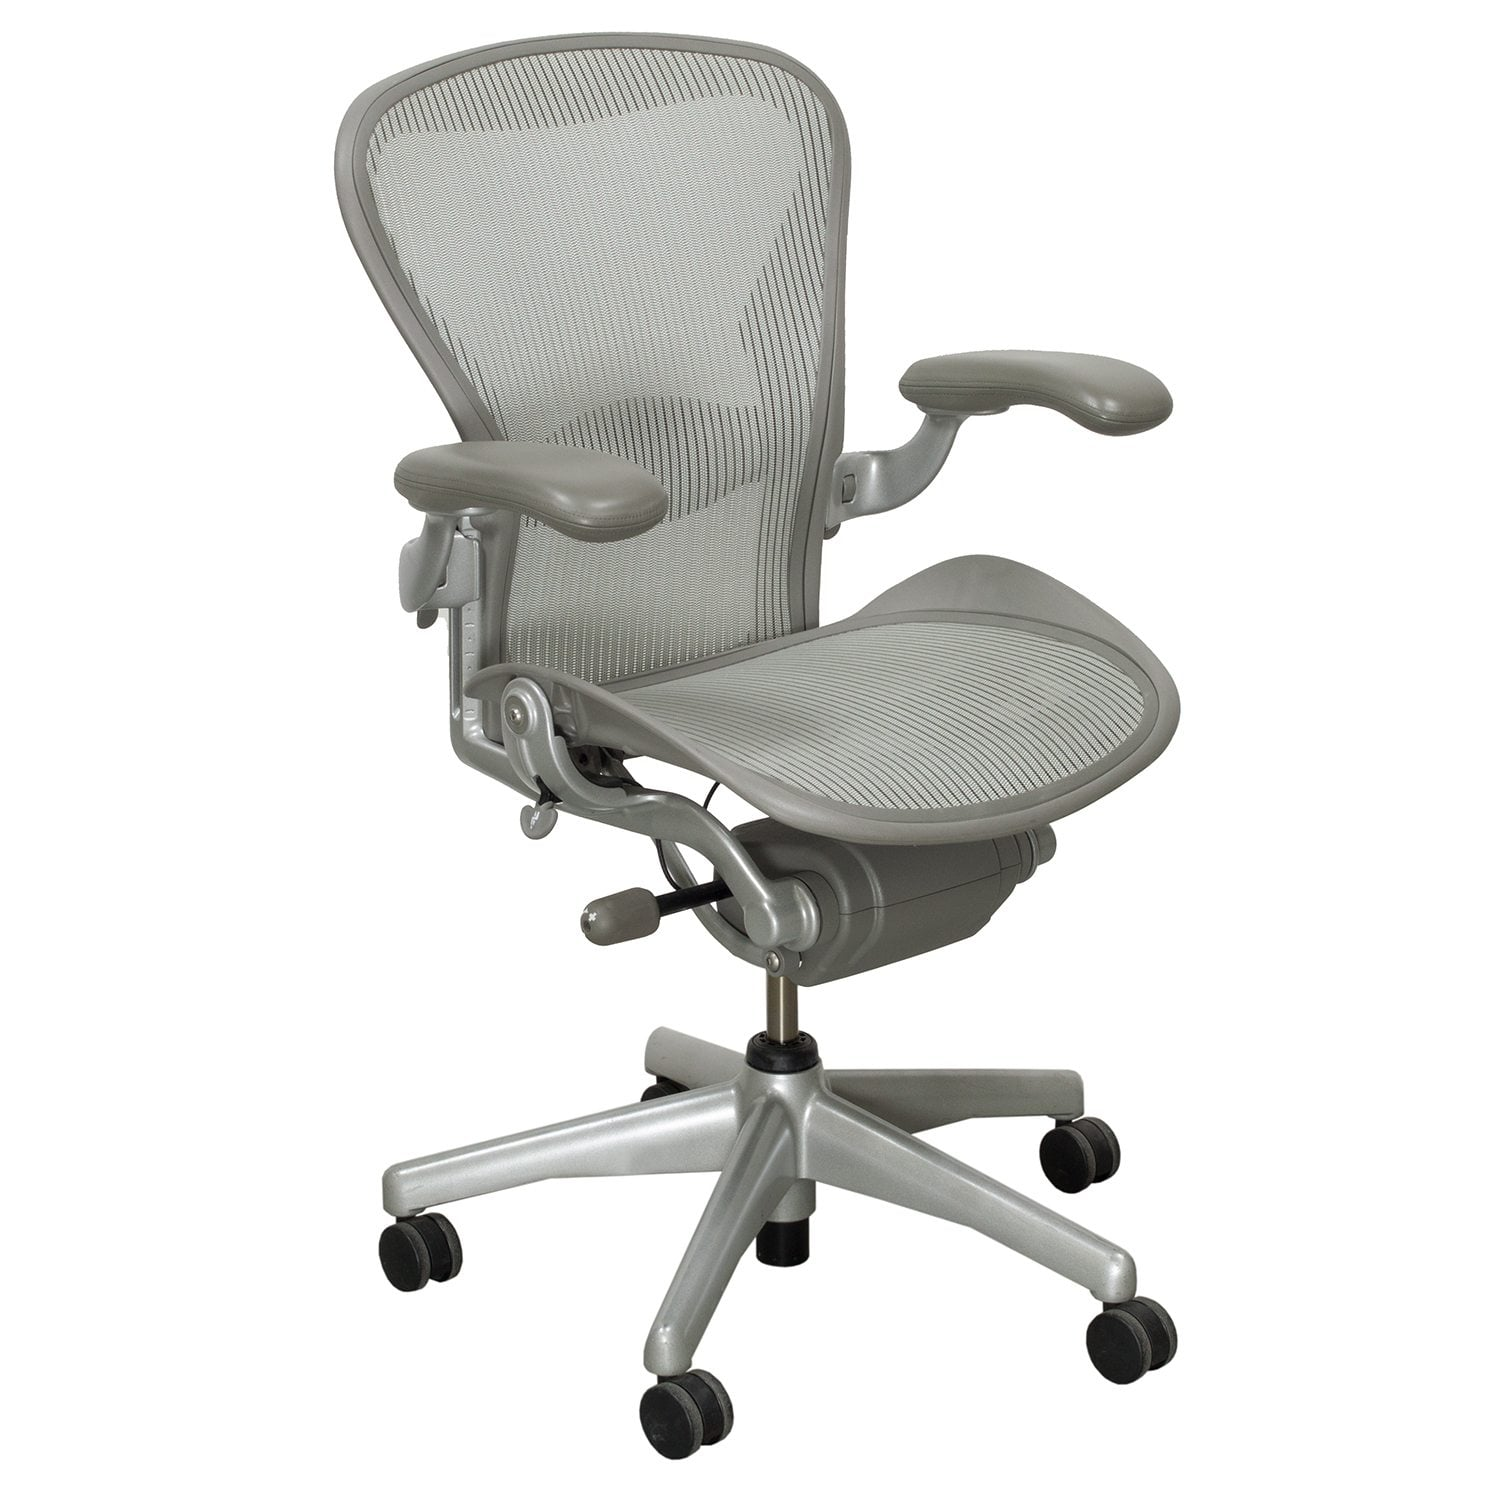 aeron chair sizes ke design herman miller used size b full function task